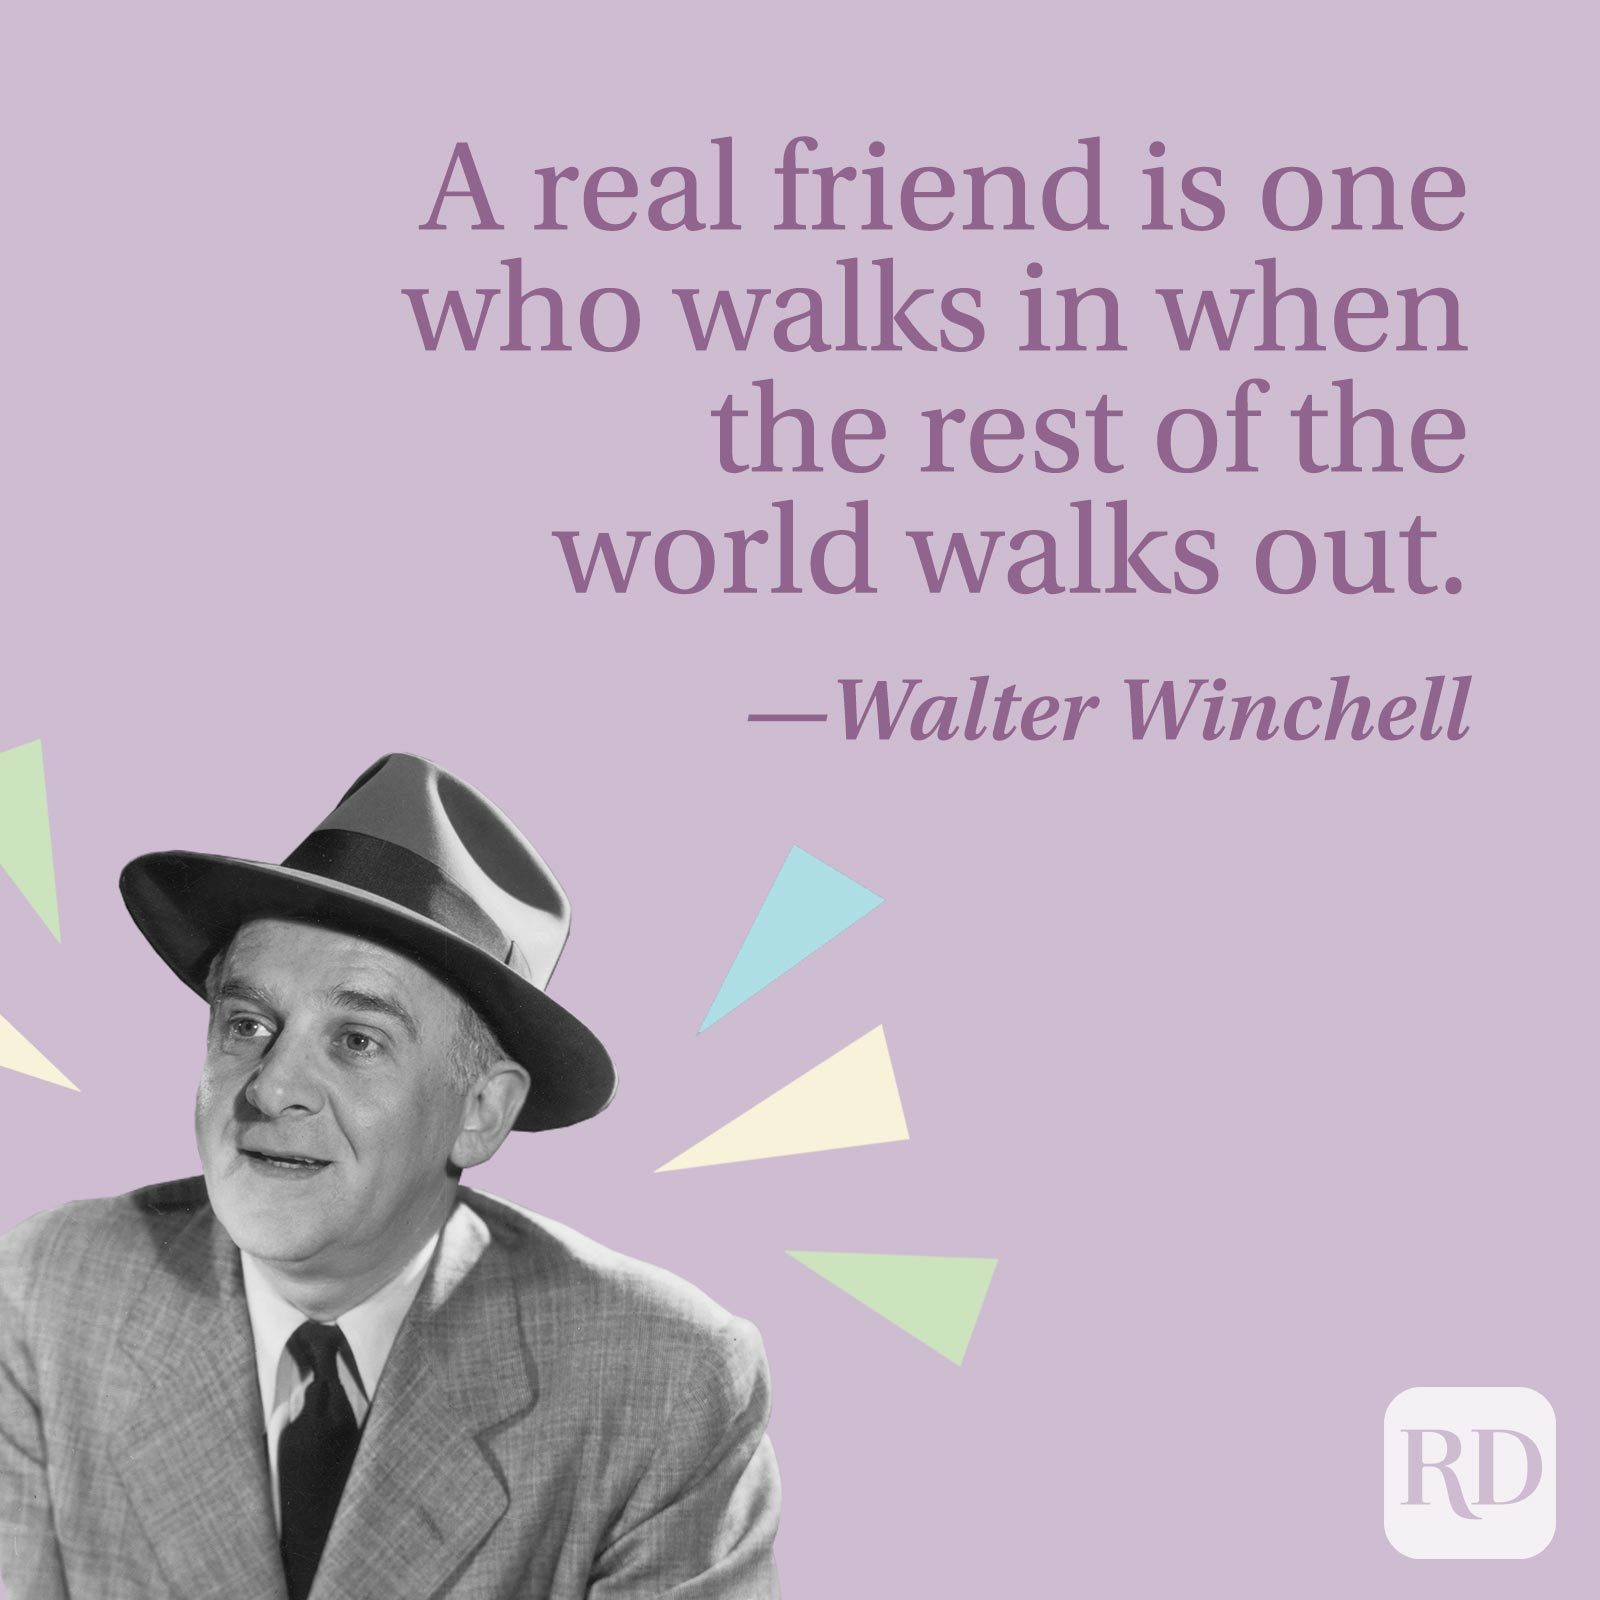 A real friend is one who walks in when the rest of the world walks out.—Walter Winchell